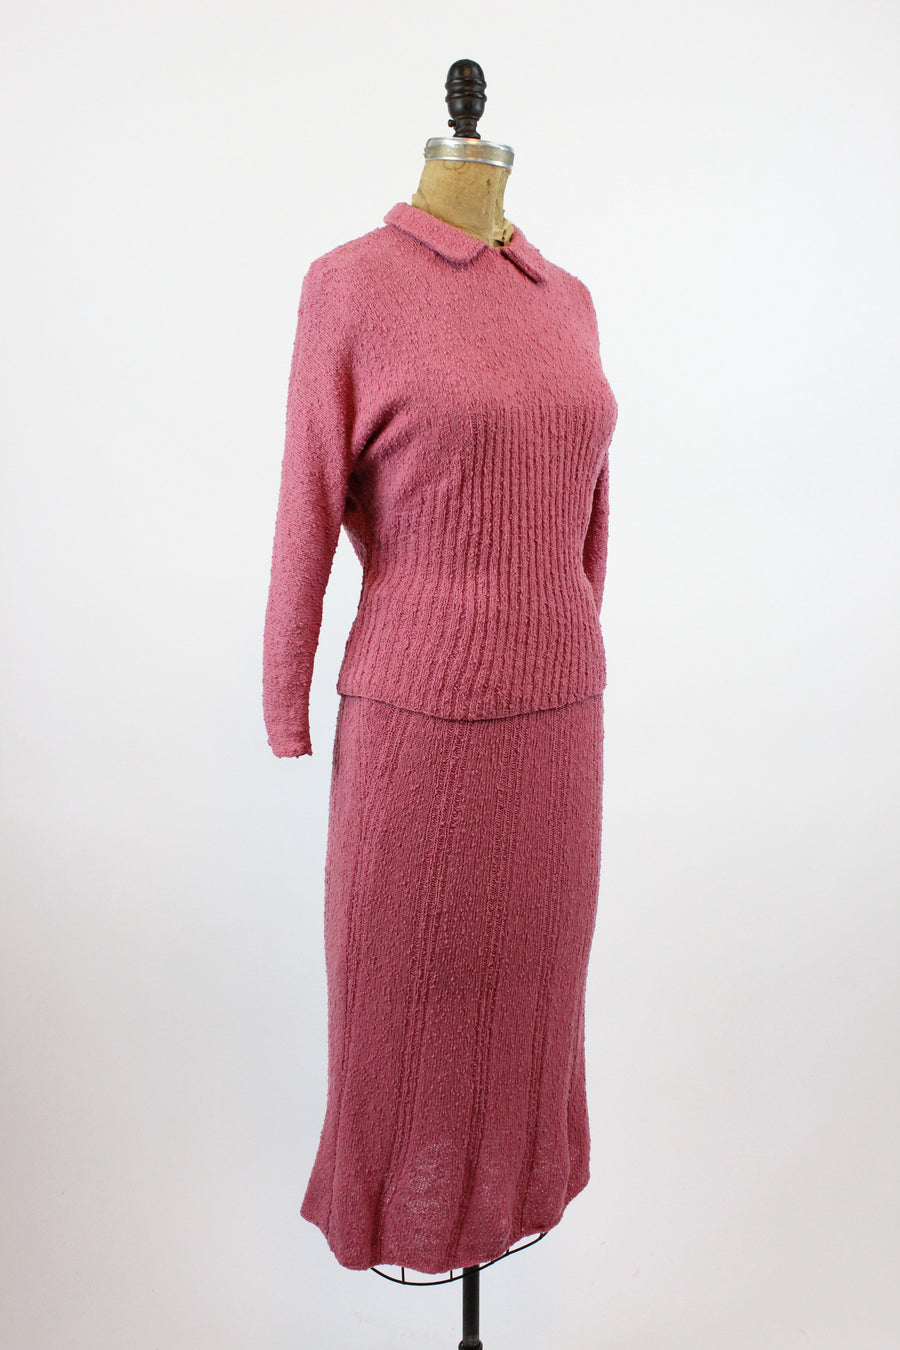 1940s rose knit sweater and skirt small medium | vintage sweater dress